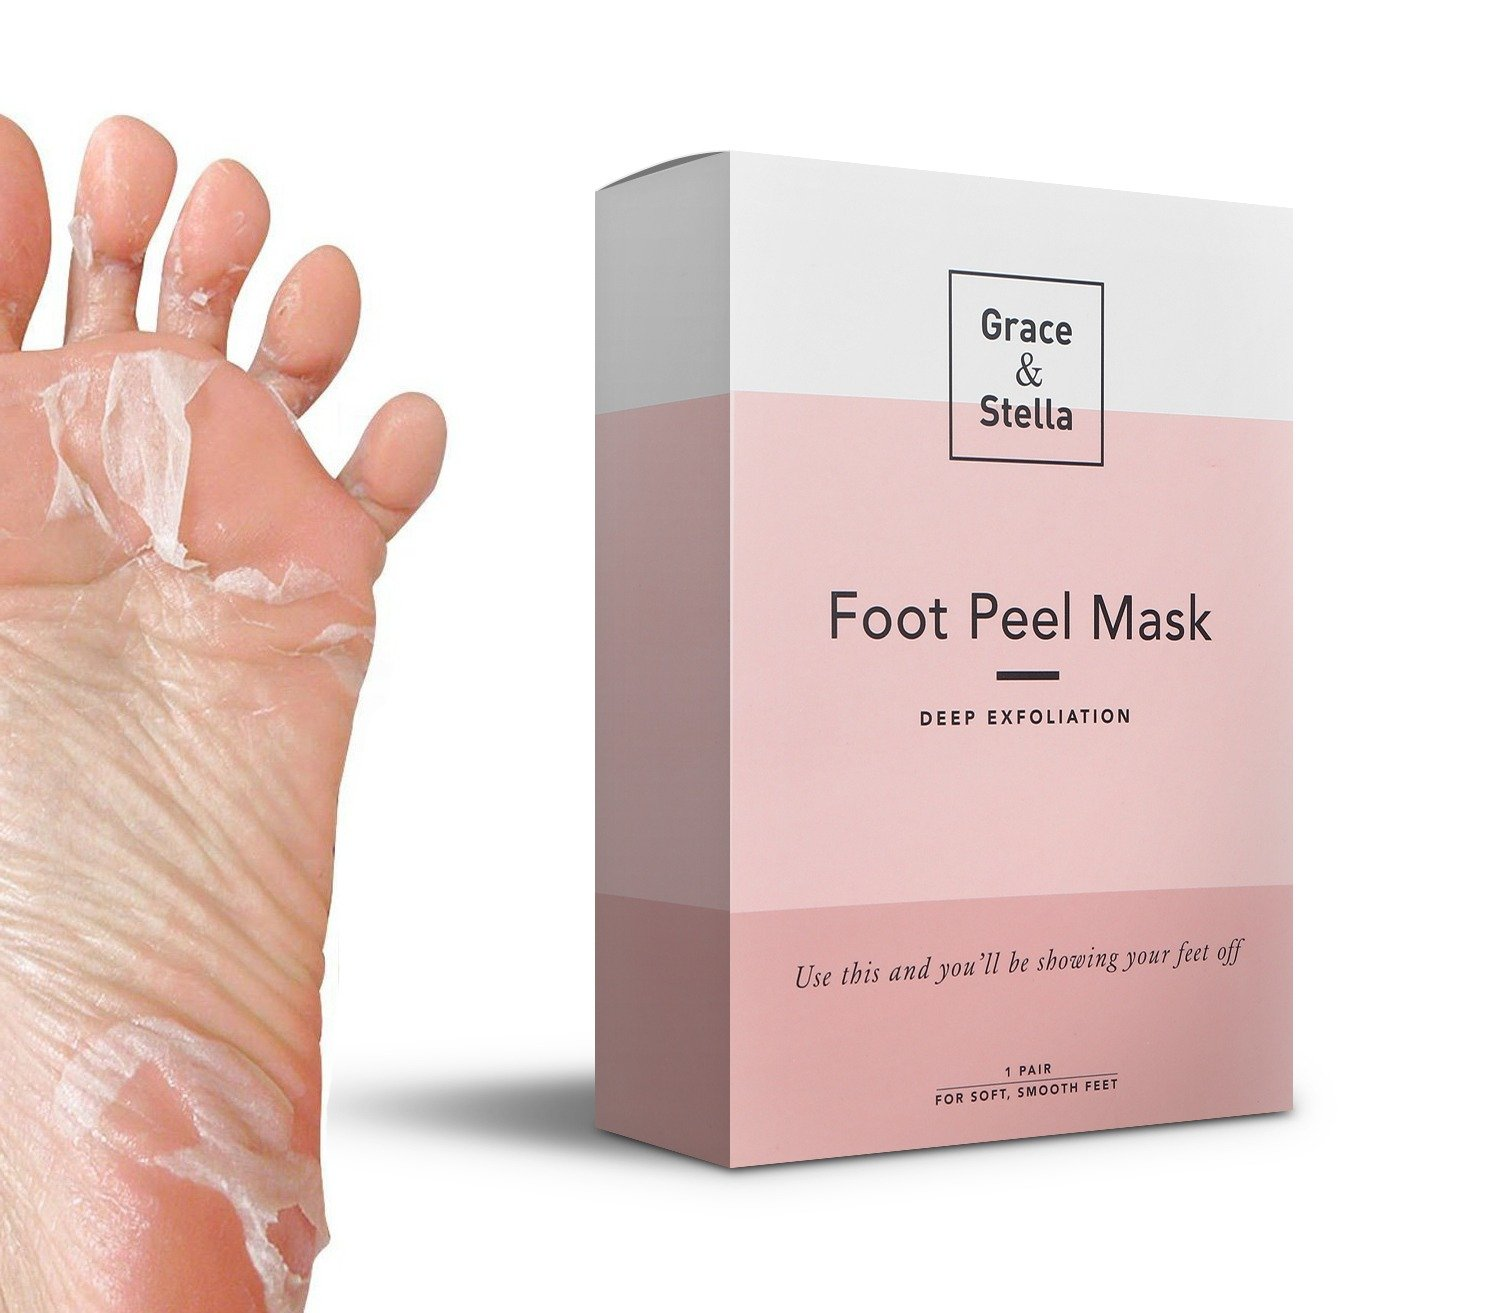 BEST Dr. Pedicure Foot Exfoliation Peeling Mask | For Baby Smooth Soft Feet, Dry Dead Skin Natural Treatment, Repair Rough Heels, Callus Remover, Soak Socks Booties, Get Gentle Feet, Original (1 Pair)